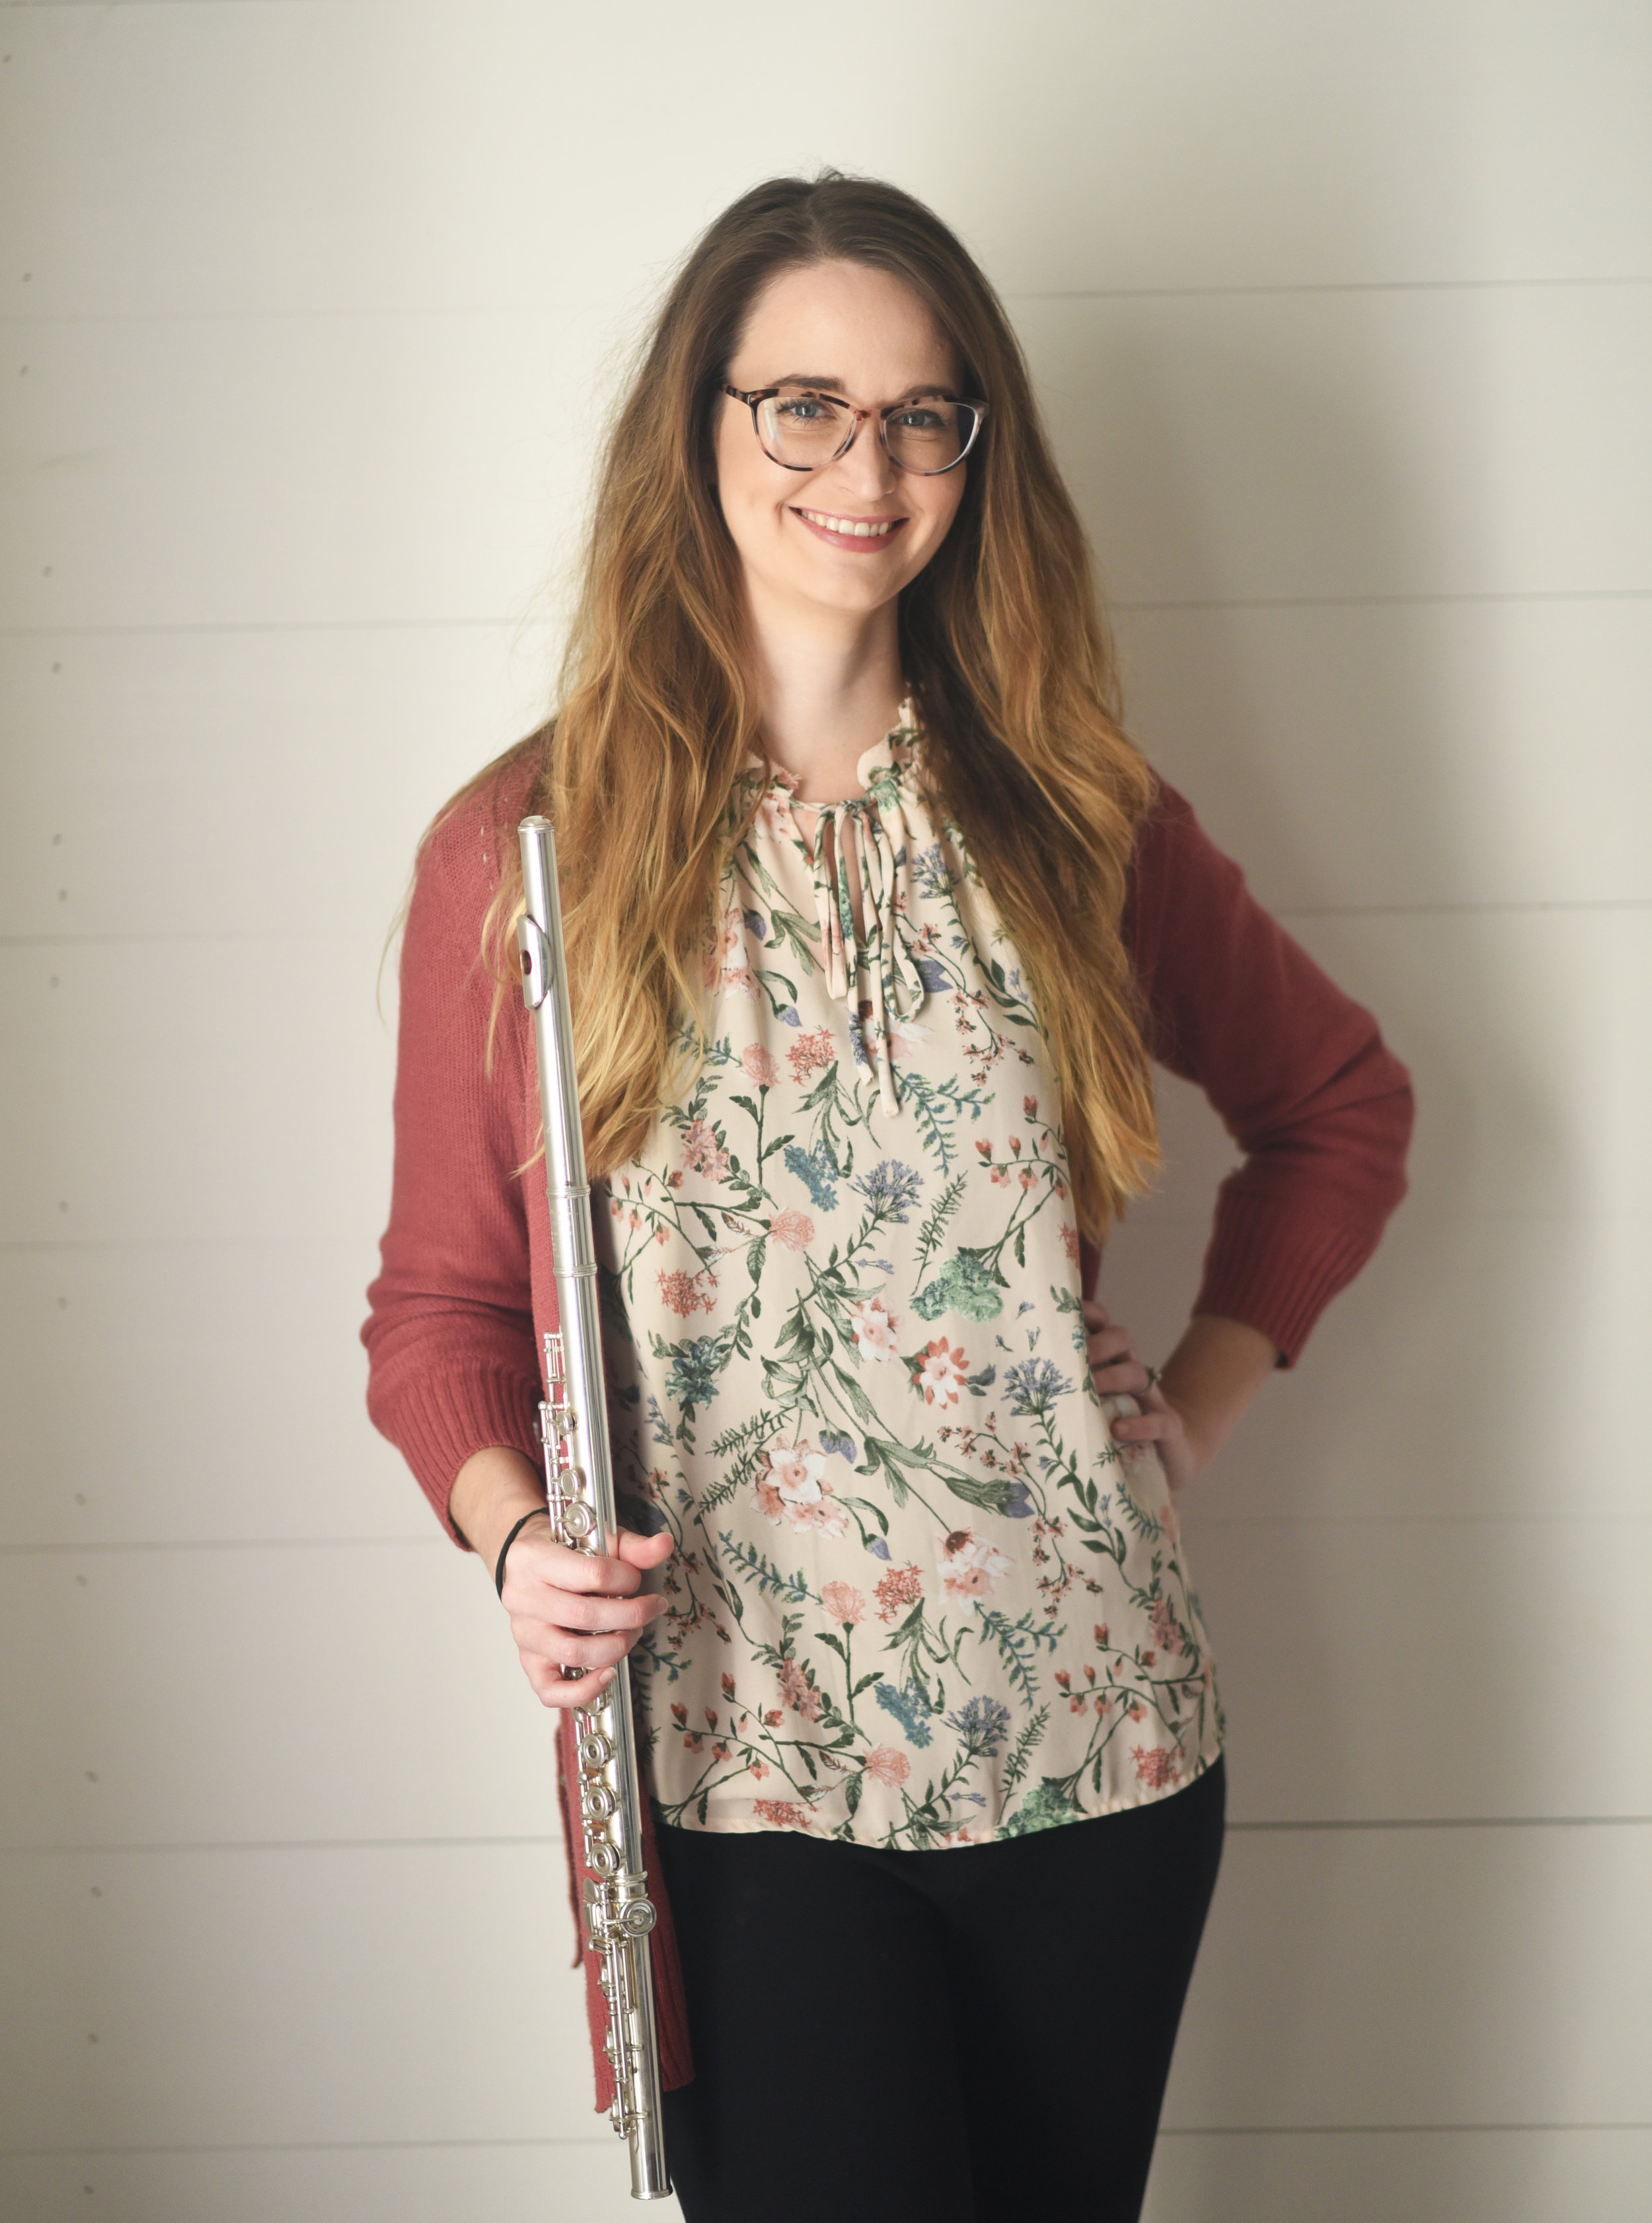 For more about me and my flute-related activities, visit  www.kalliesnyderflute.com